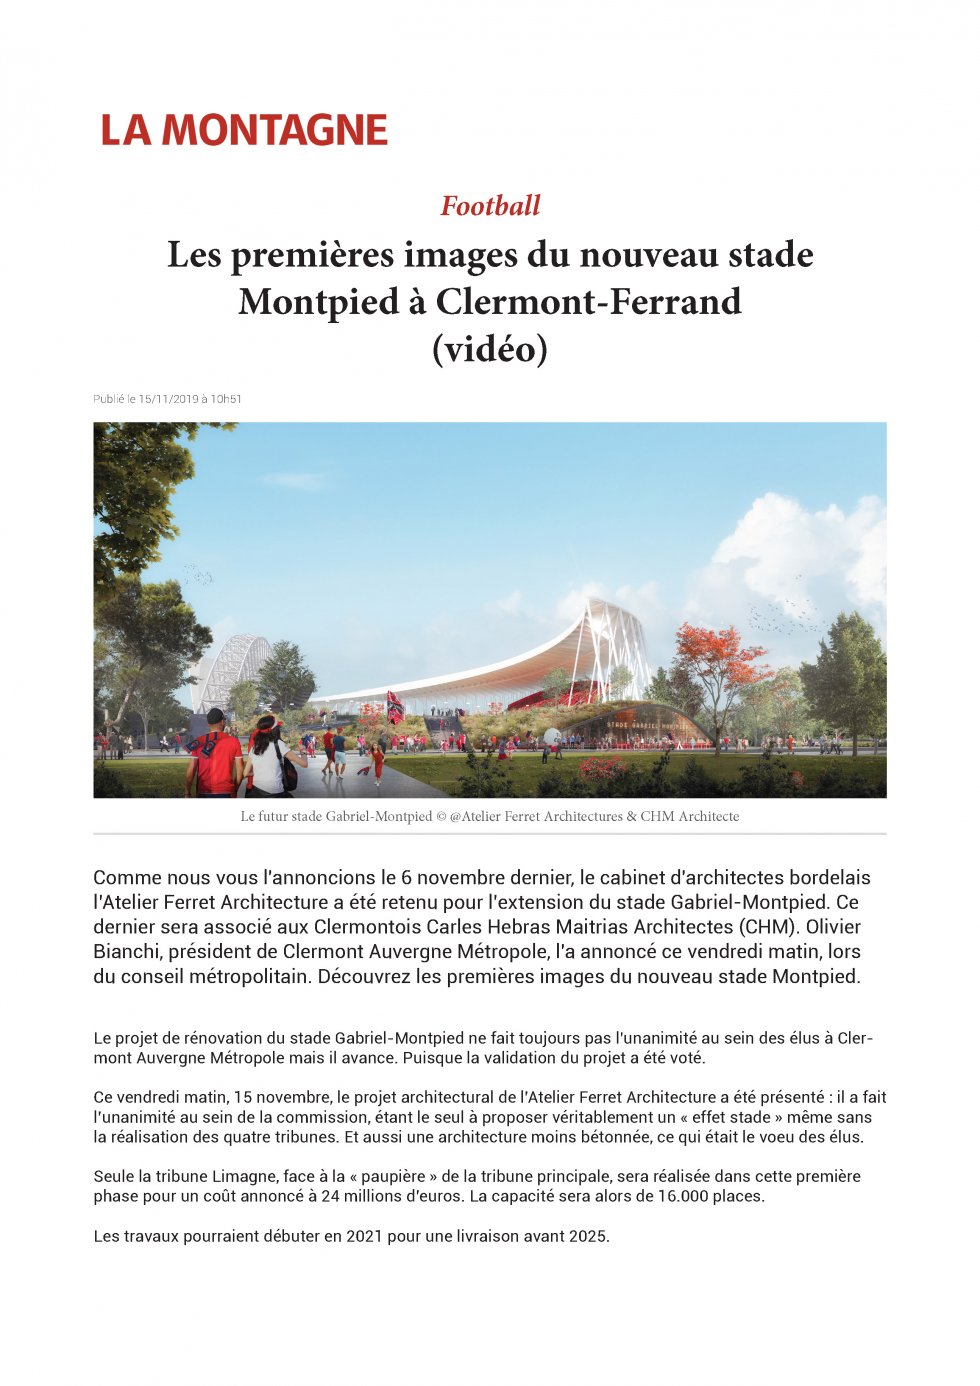 The first image of new stadium Montpied in Clermont-Ferrand (video)